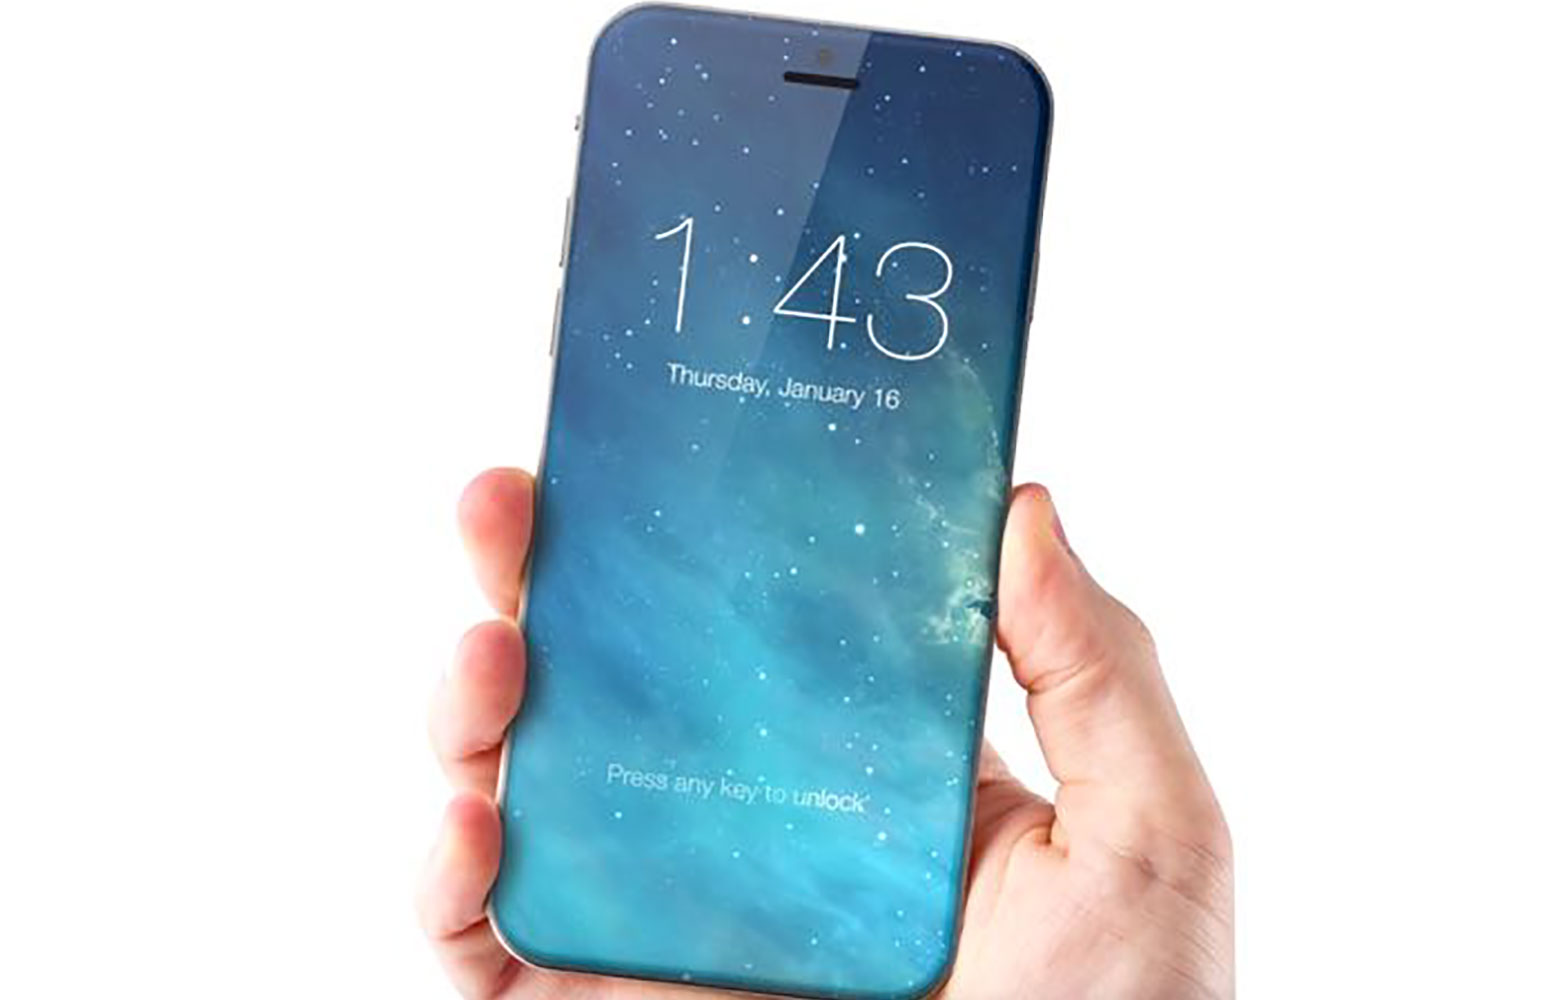 IPhone 8: Price, release date, features and more rumors